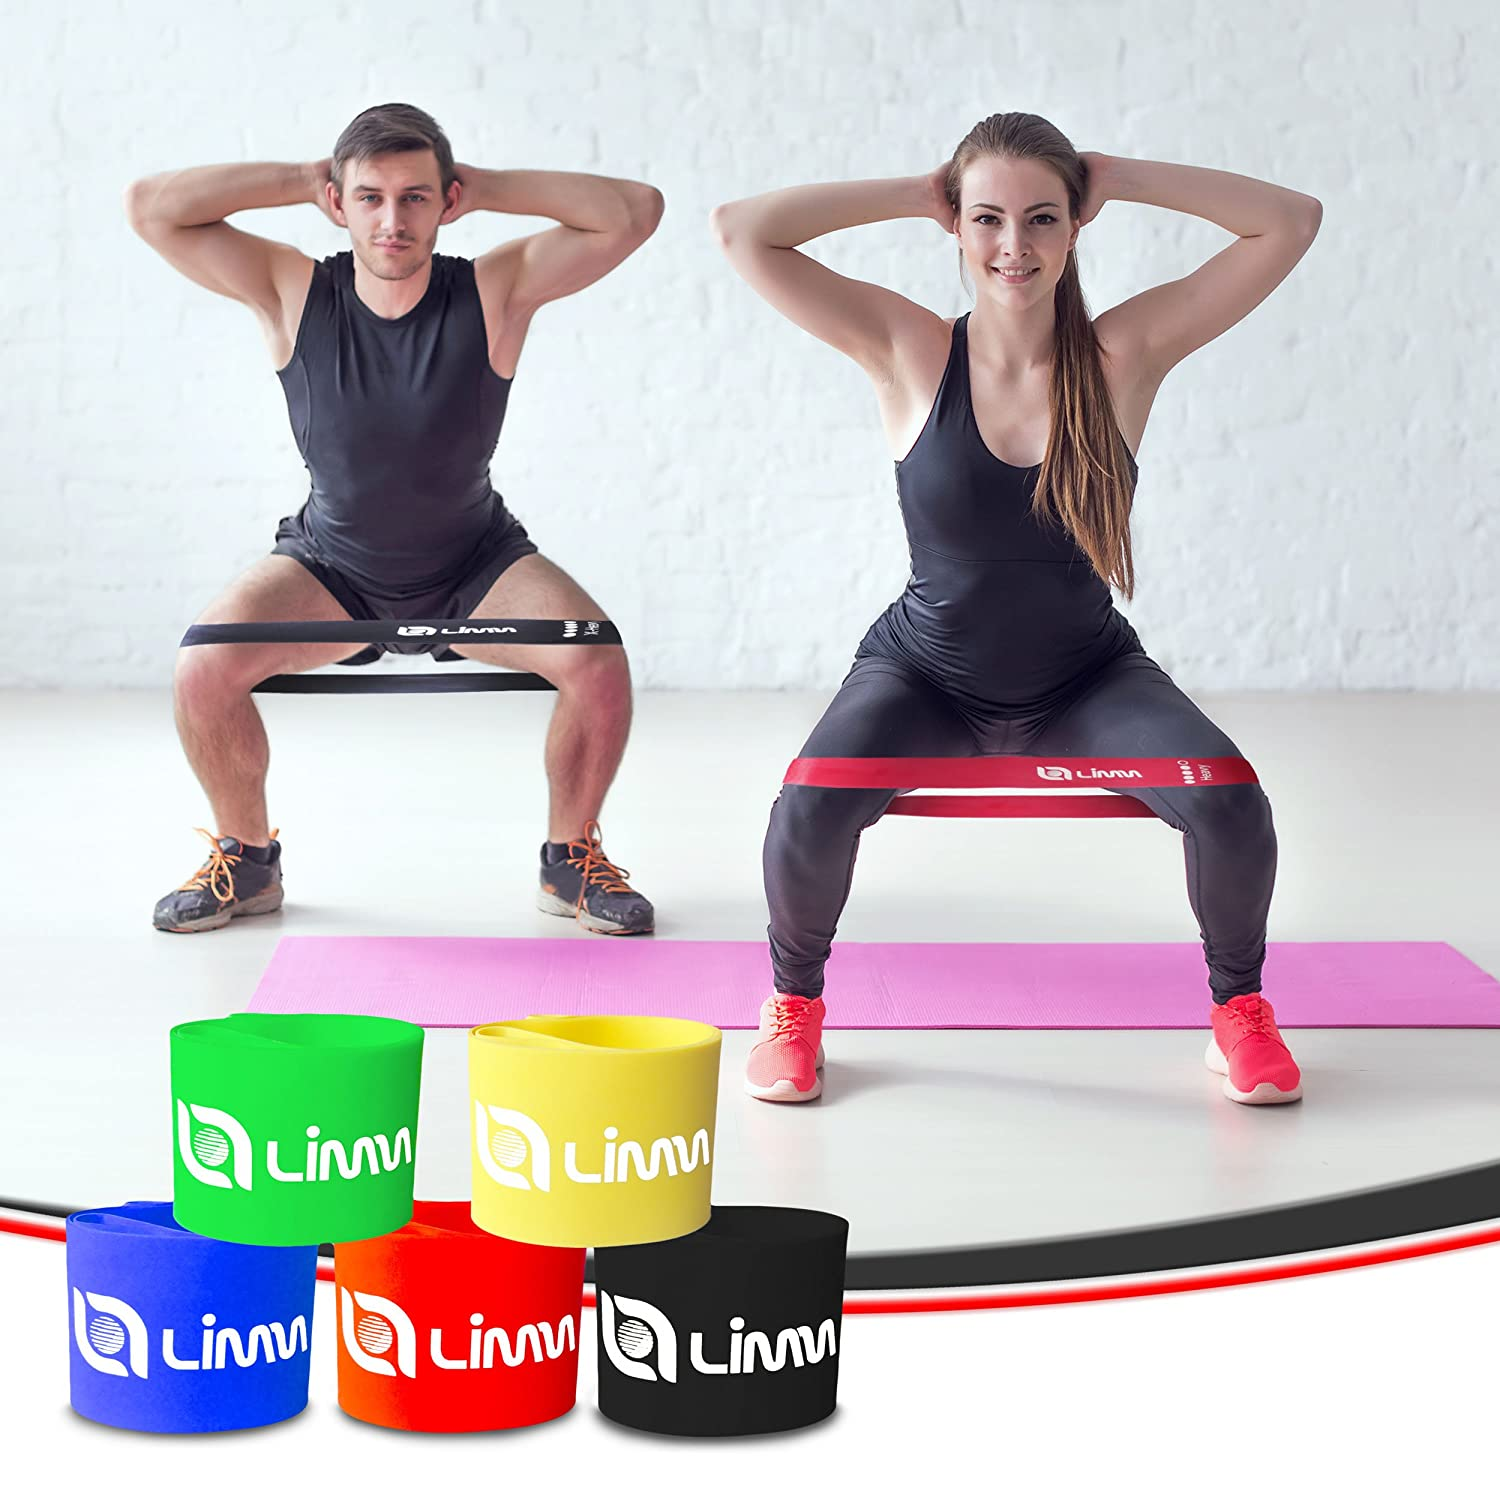 Balance exercise physical therapy - Amazon Com Limm Exercise Resistance Loop Bands Set Of 5 12 Inch Workout Bands Best For Pilates Stretching Physical Therapy Yoga And Home Fitness